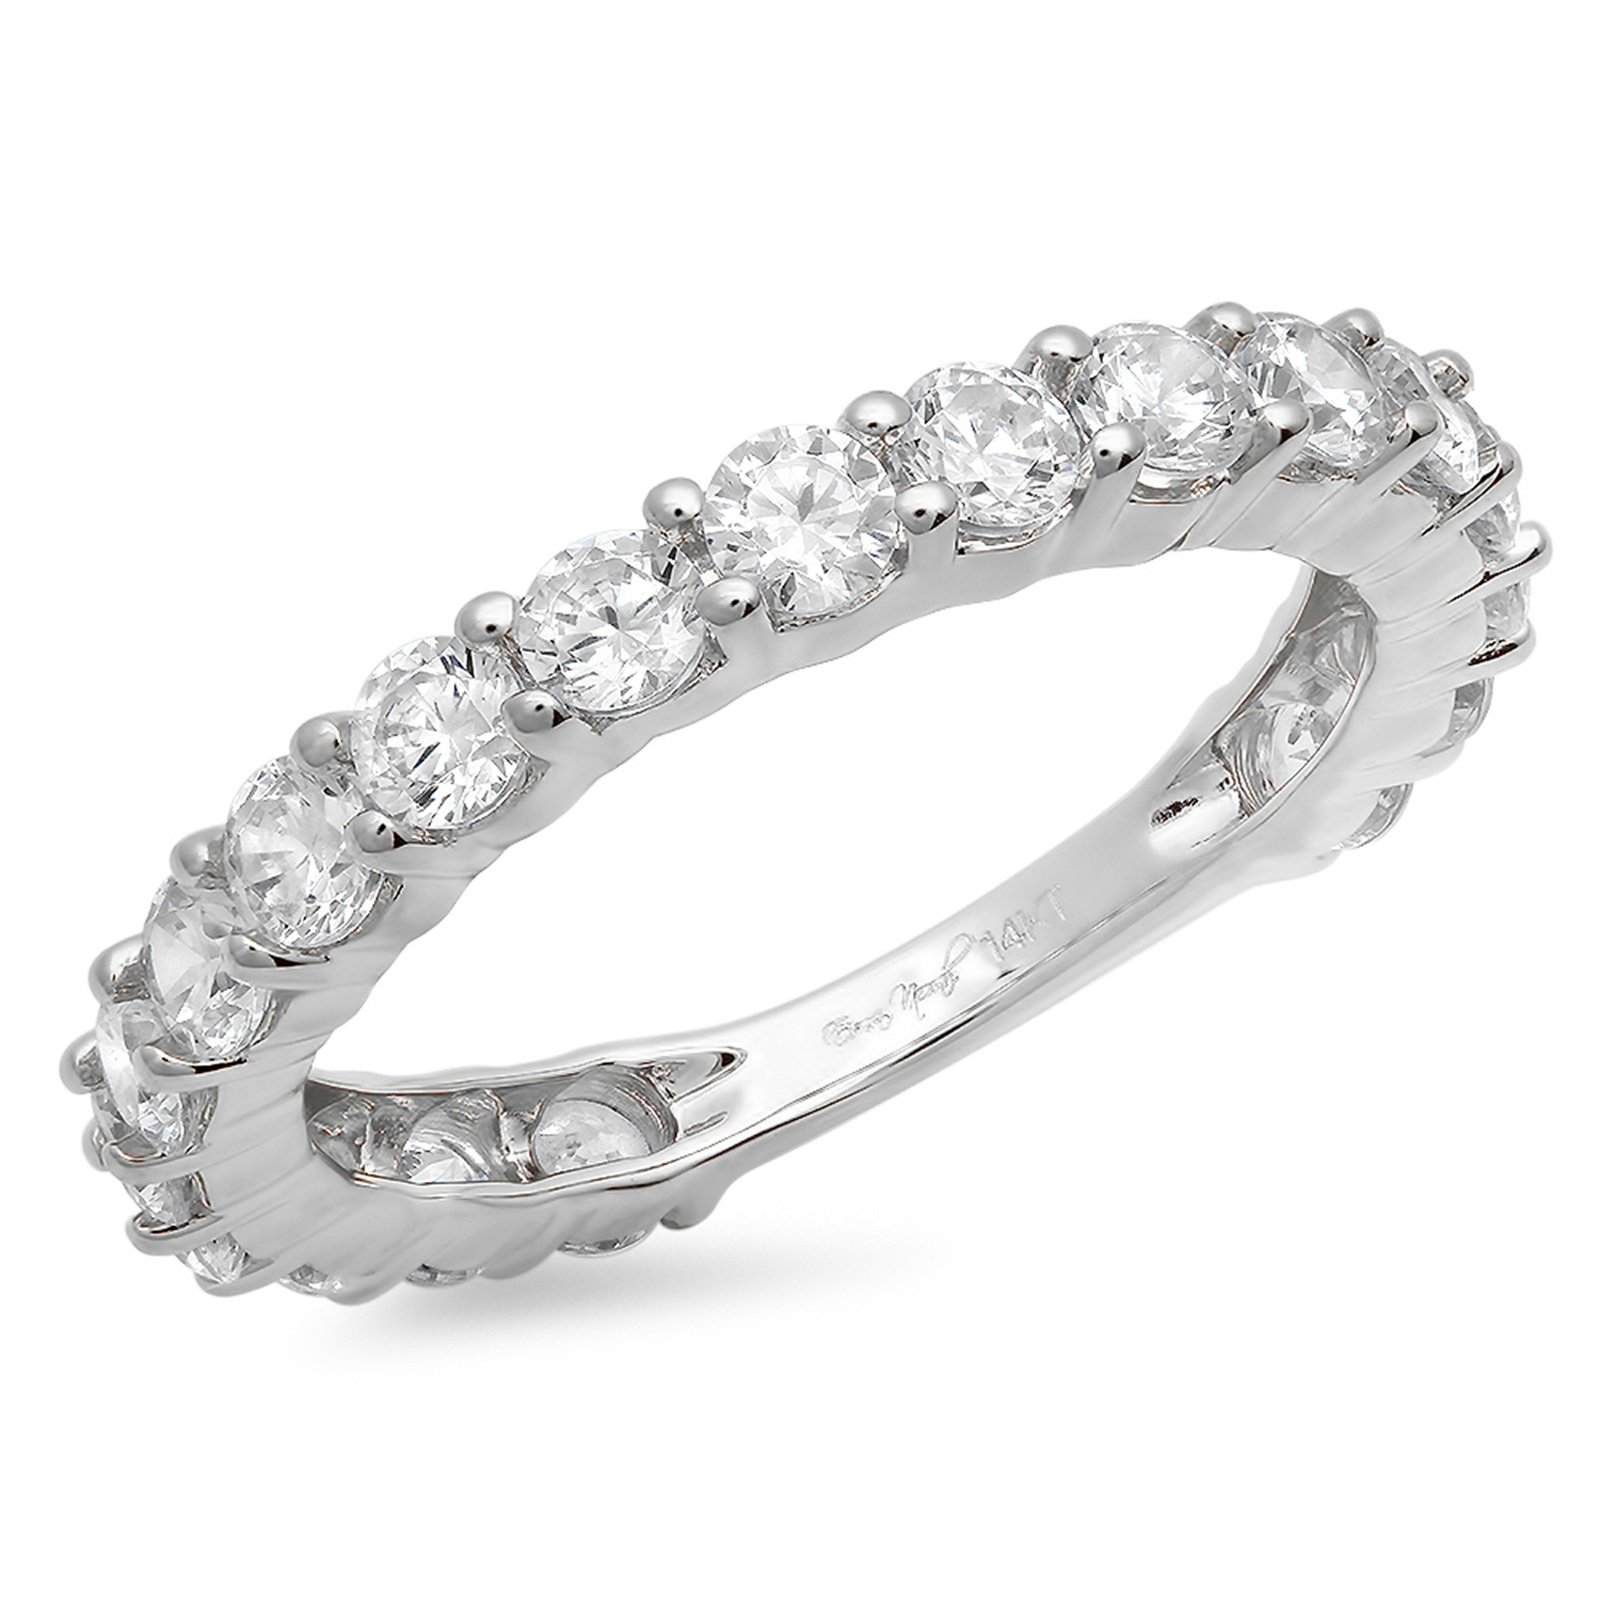 2.2 Ct Round Cut Pave 19-Stone Engagement Wedding Bridal Anniversary Ring Band 14K White Gold, Size 3.75, Clara Pucci